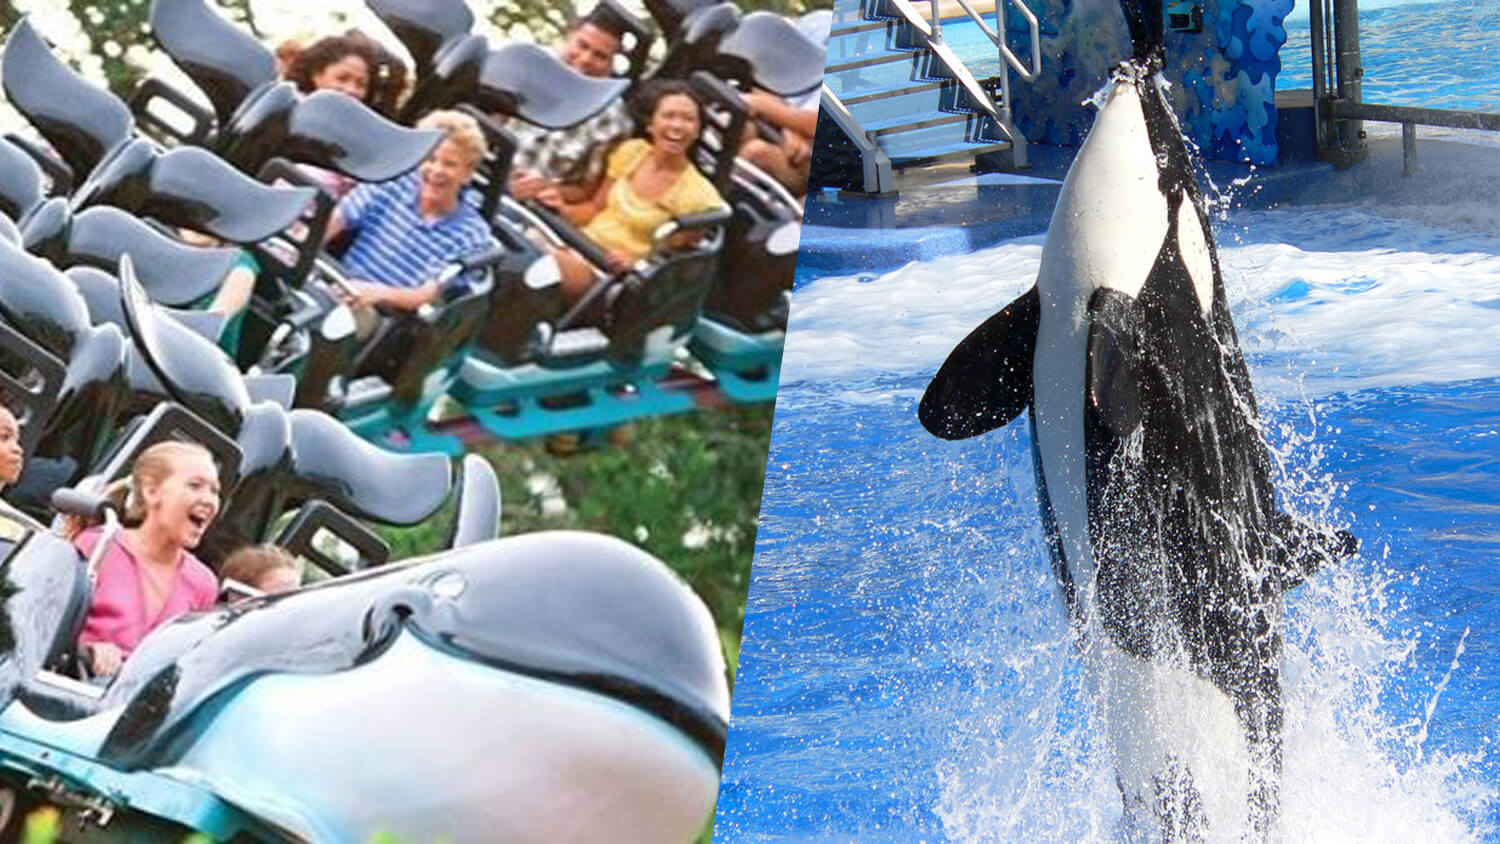 SeaWorld's Shamu Express Orca-Themed Rollercoaster Ride Shuts Down